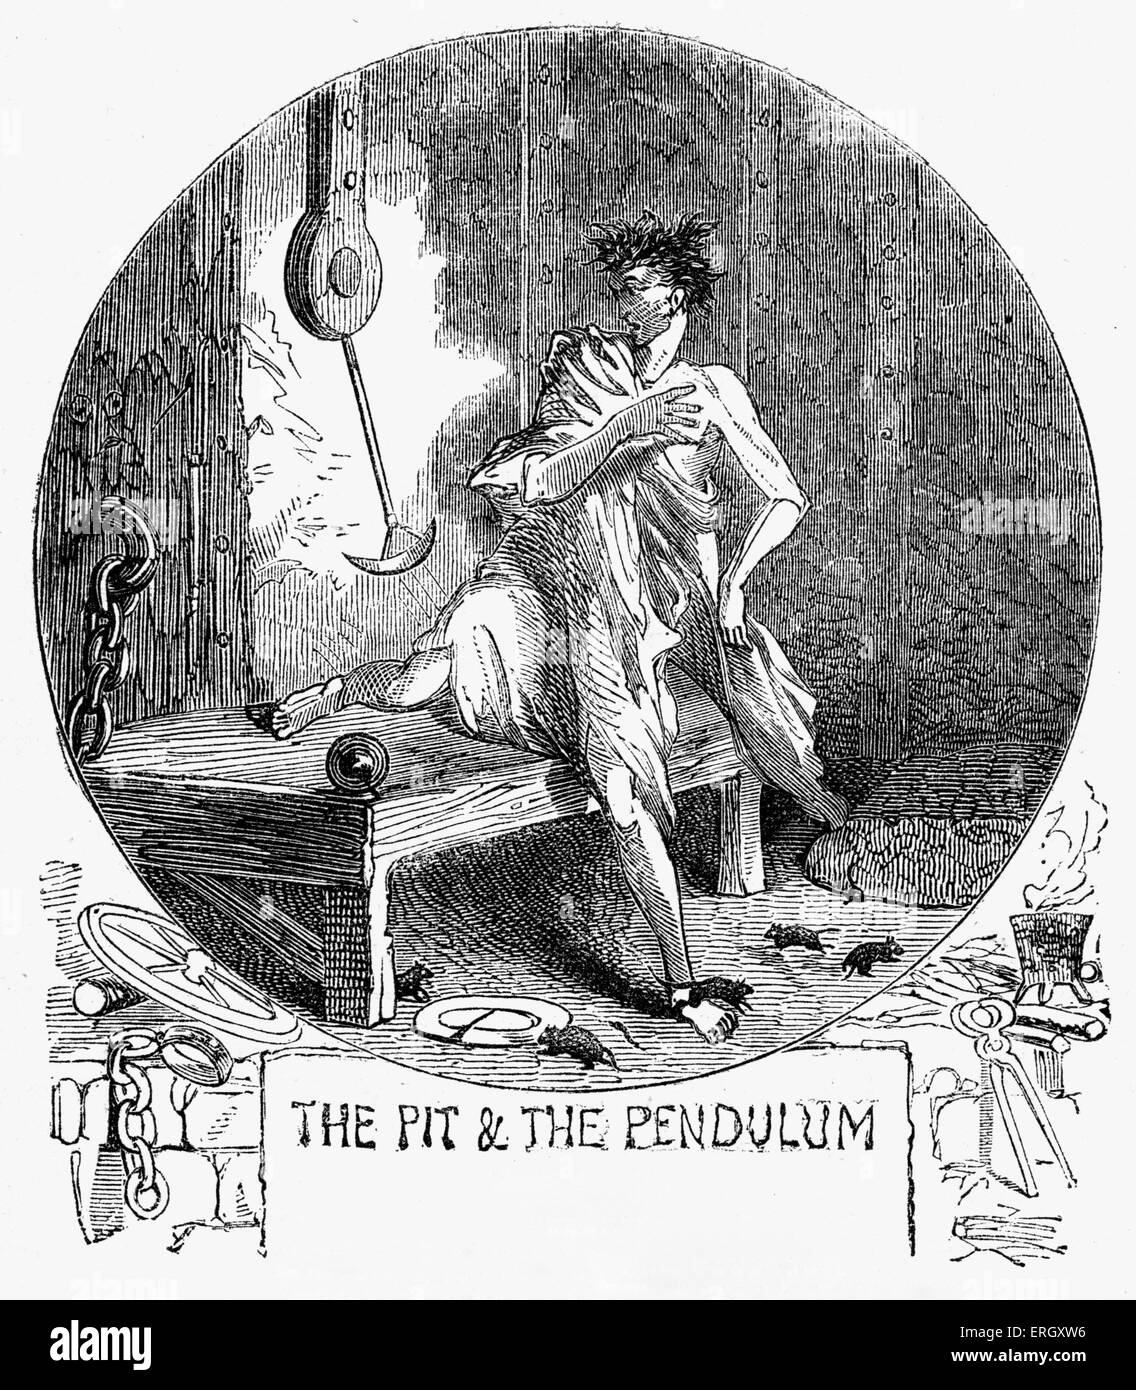 'The pit and the pendulum': Short story by Edgar Allan Poe. EAP: American author & poet, 19 January - Stock Image